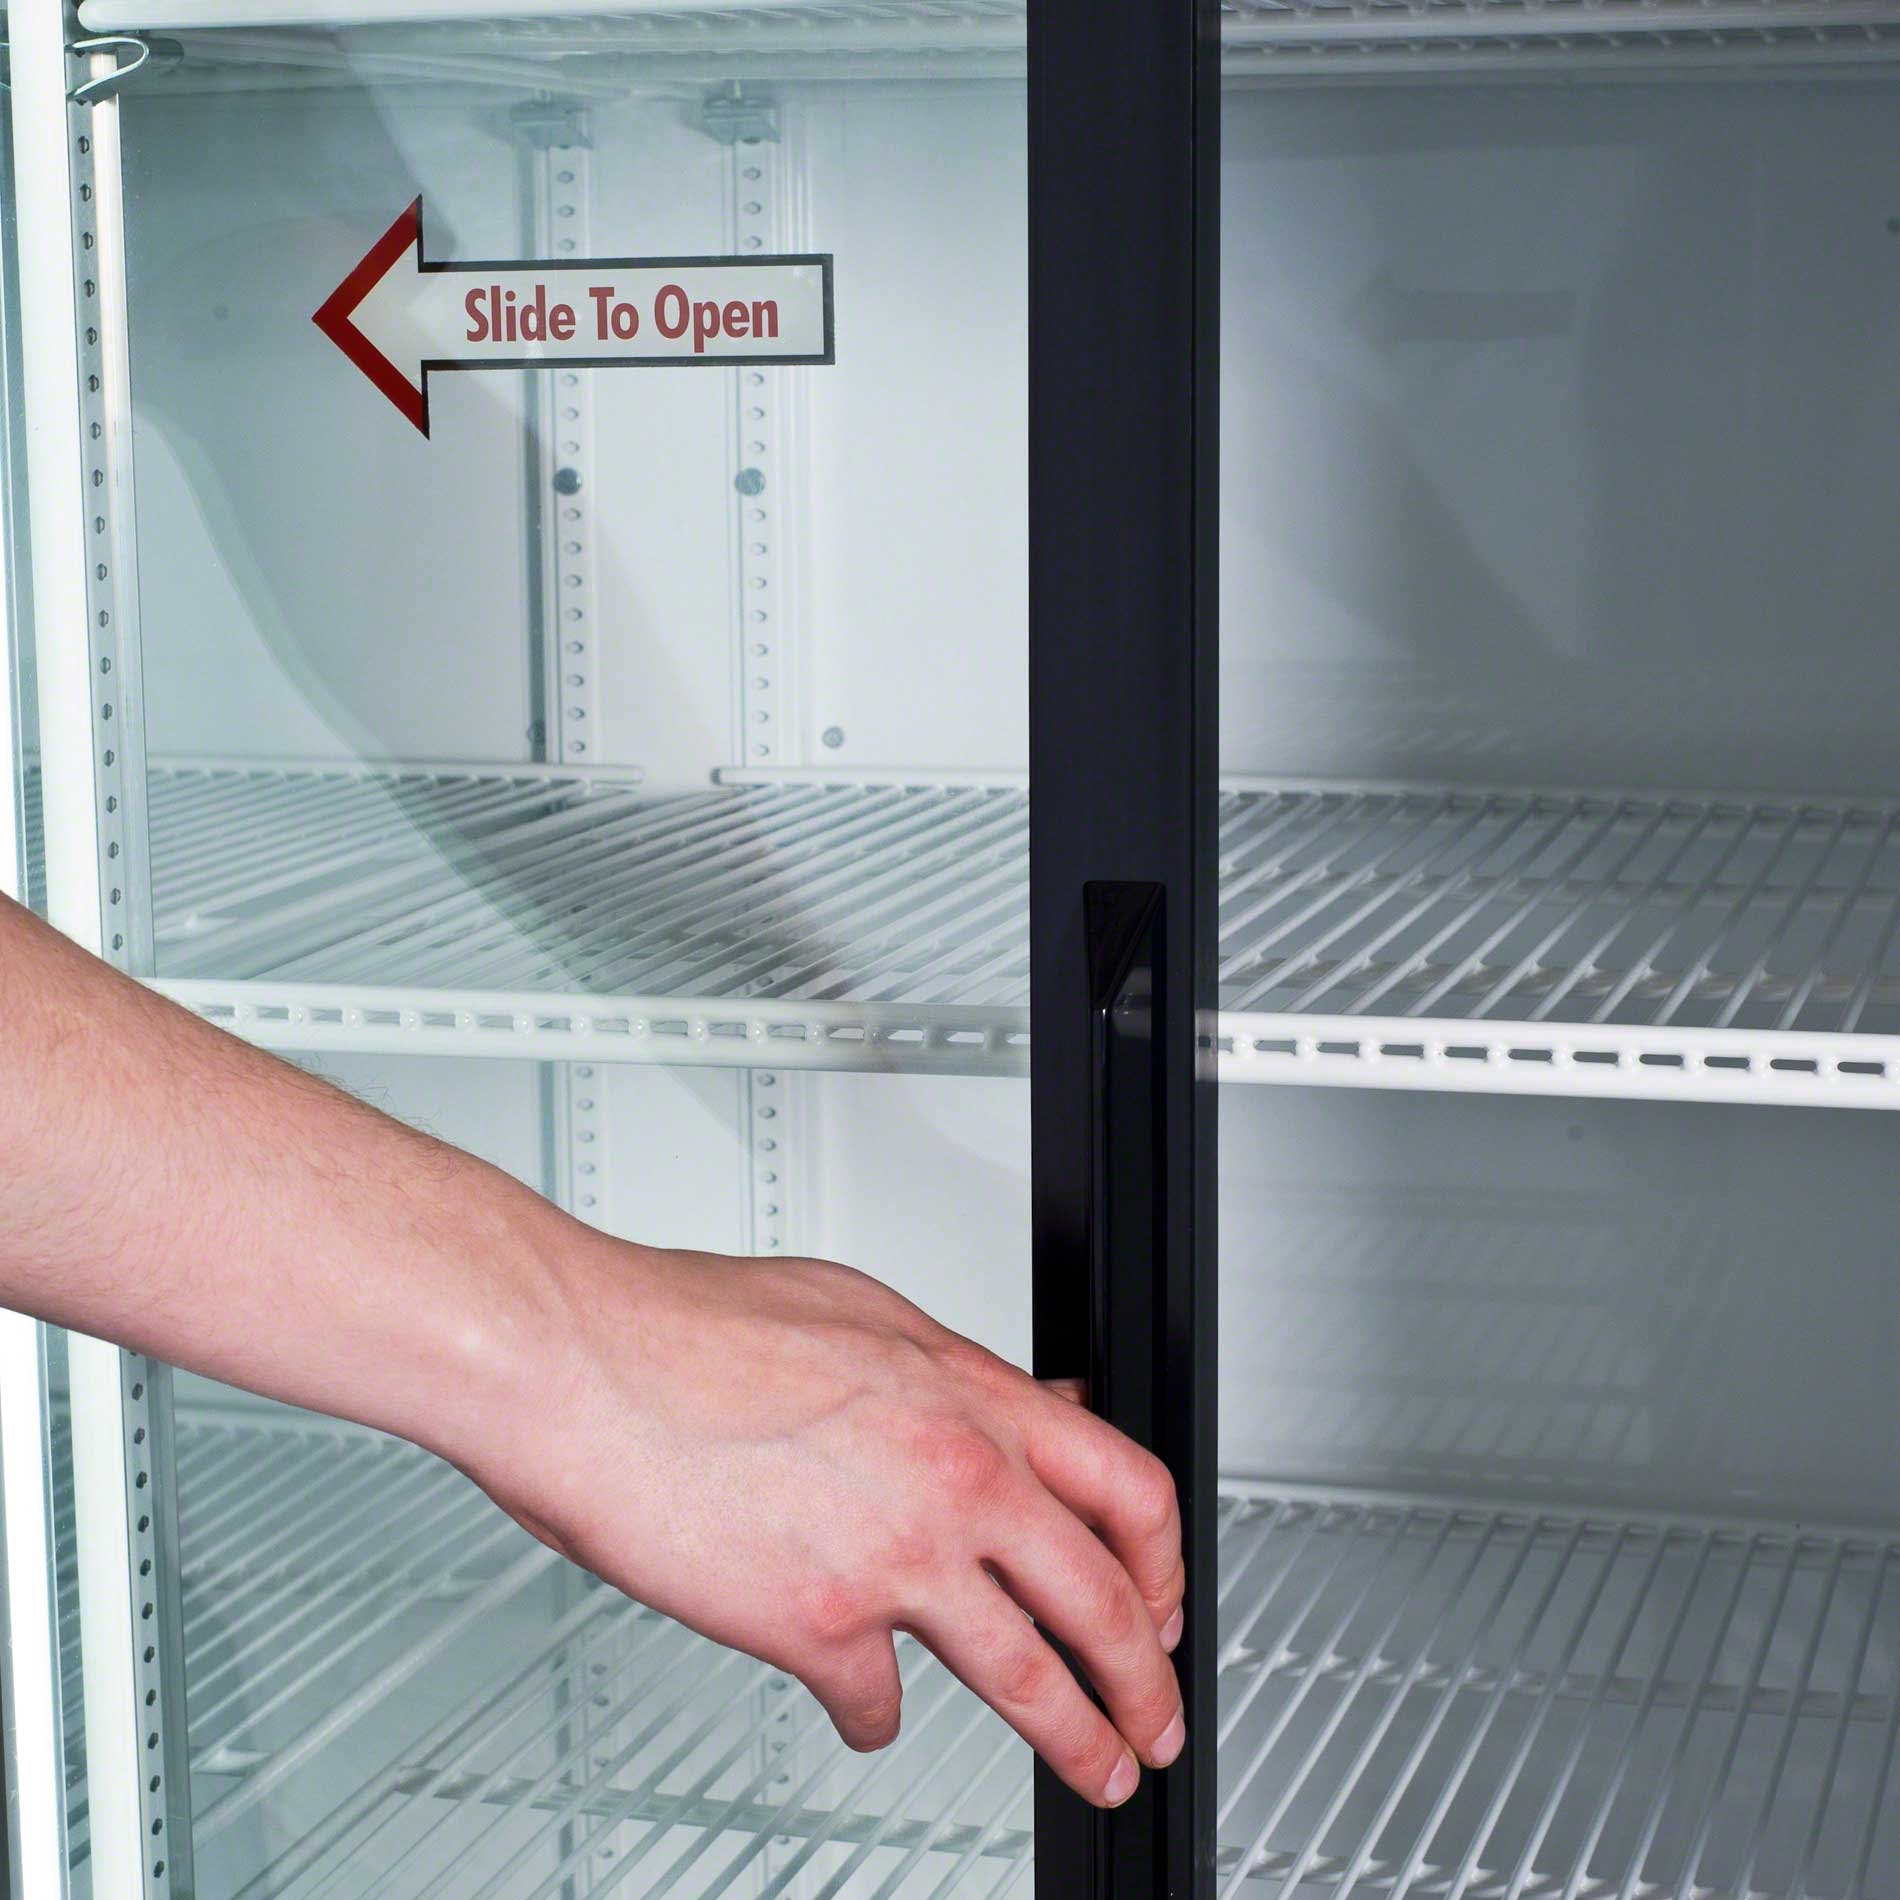 "True - GDM-69 79"" Slide Glass Door Merchandiser Refrigerator Commercial refrigerator sold by Food Service Warehouse"